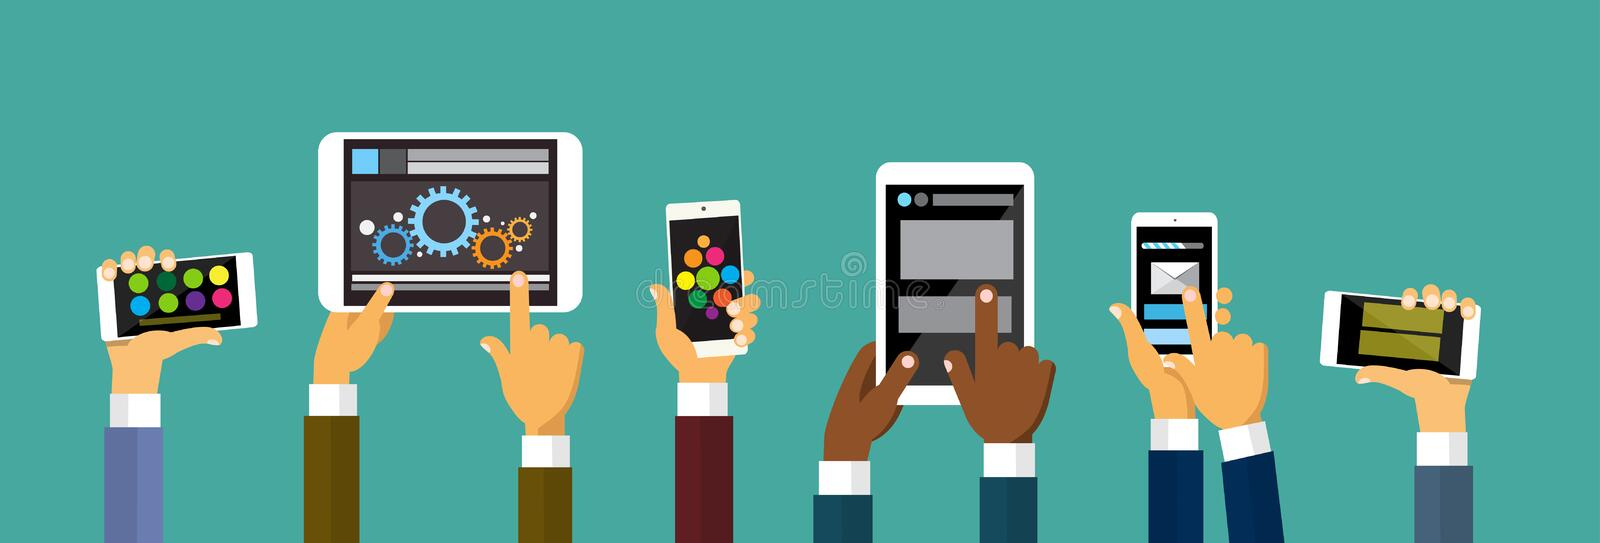 Group Hands Holding Smart Cell Phone Tablet Computer, Technology Concept. Flat Vector Illustration vector illustration